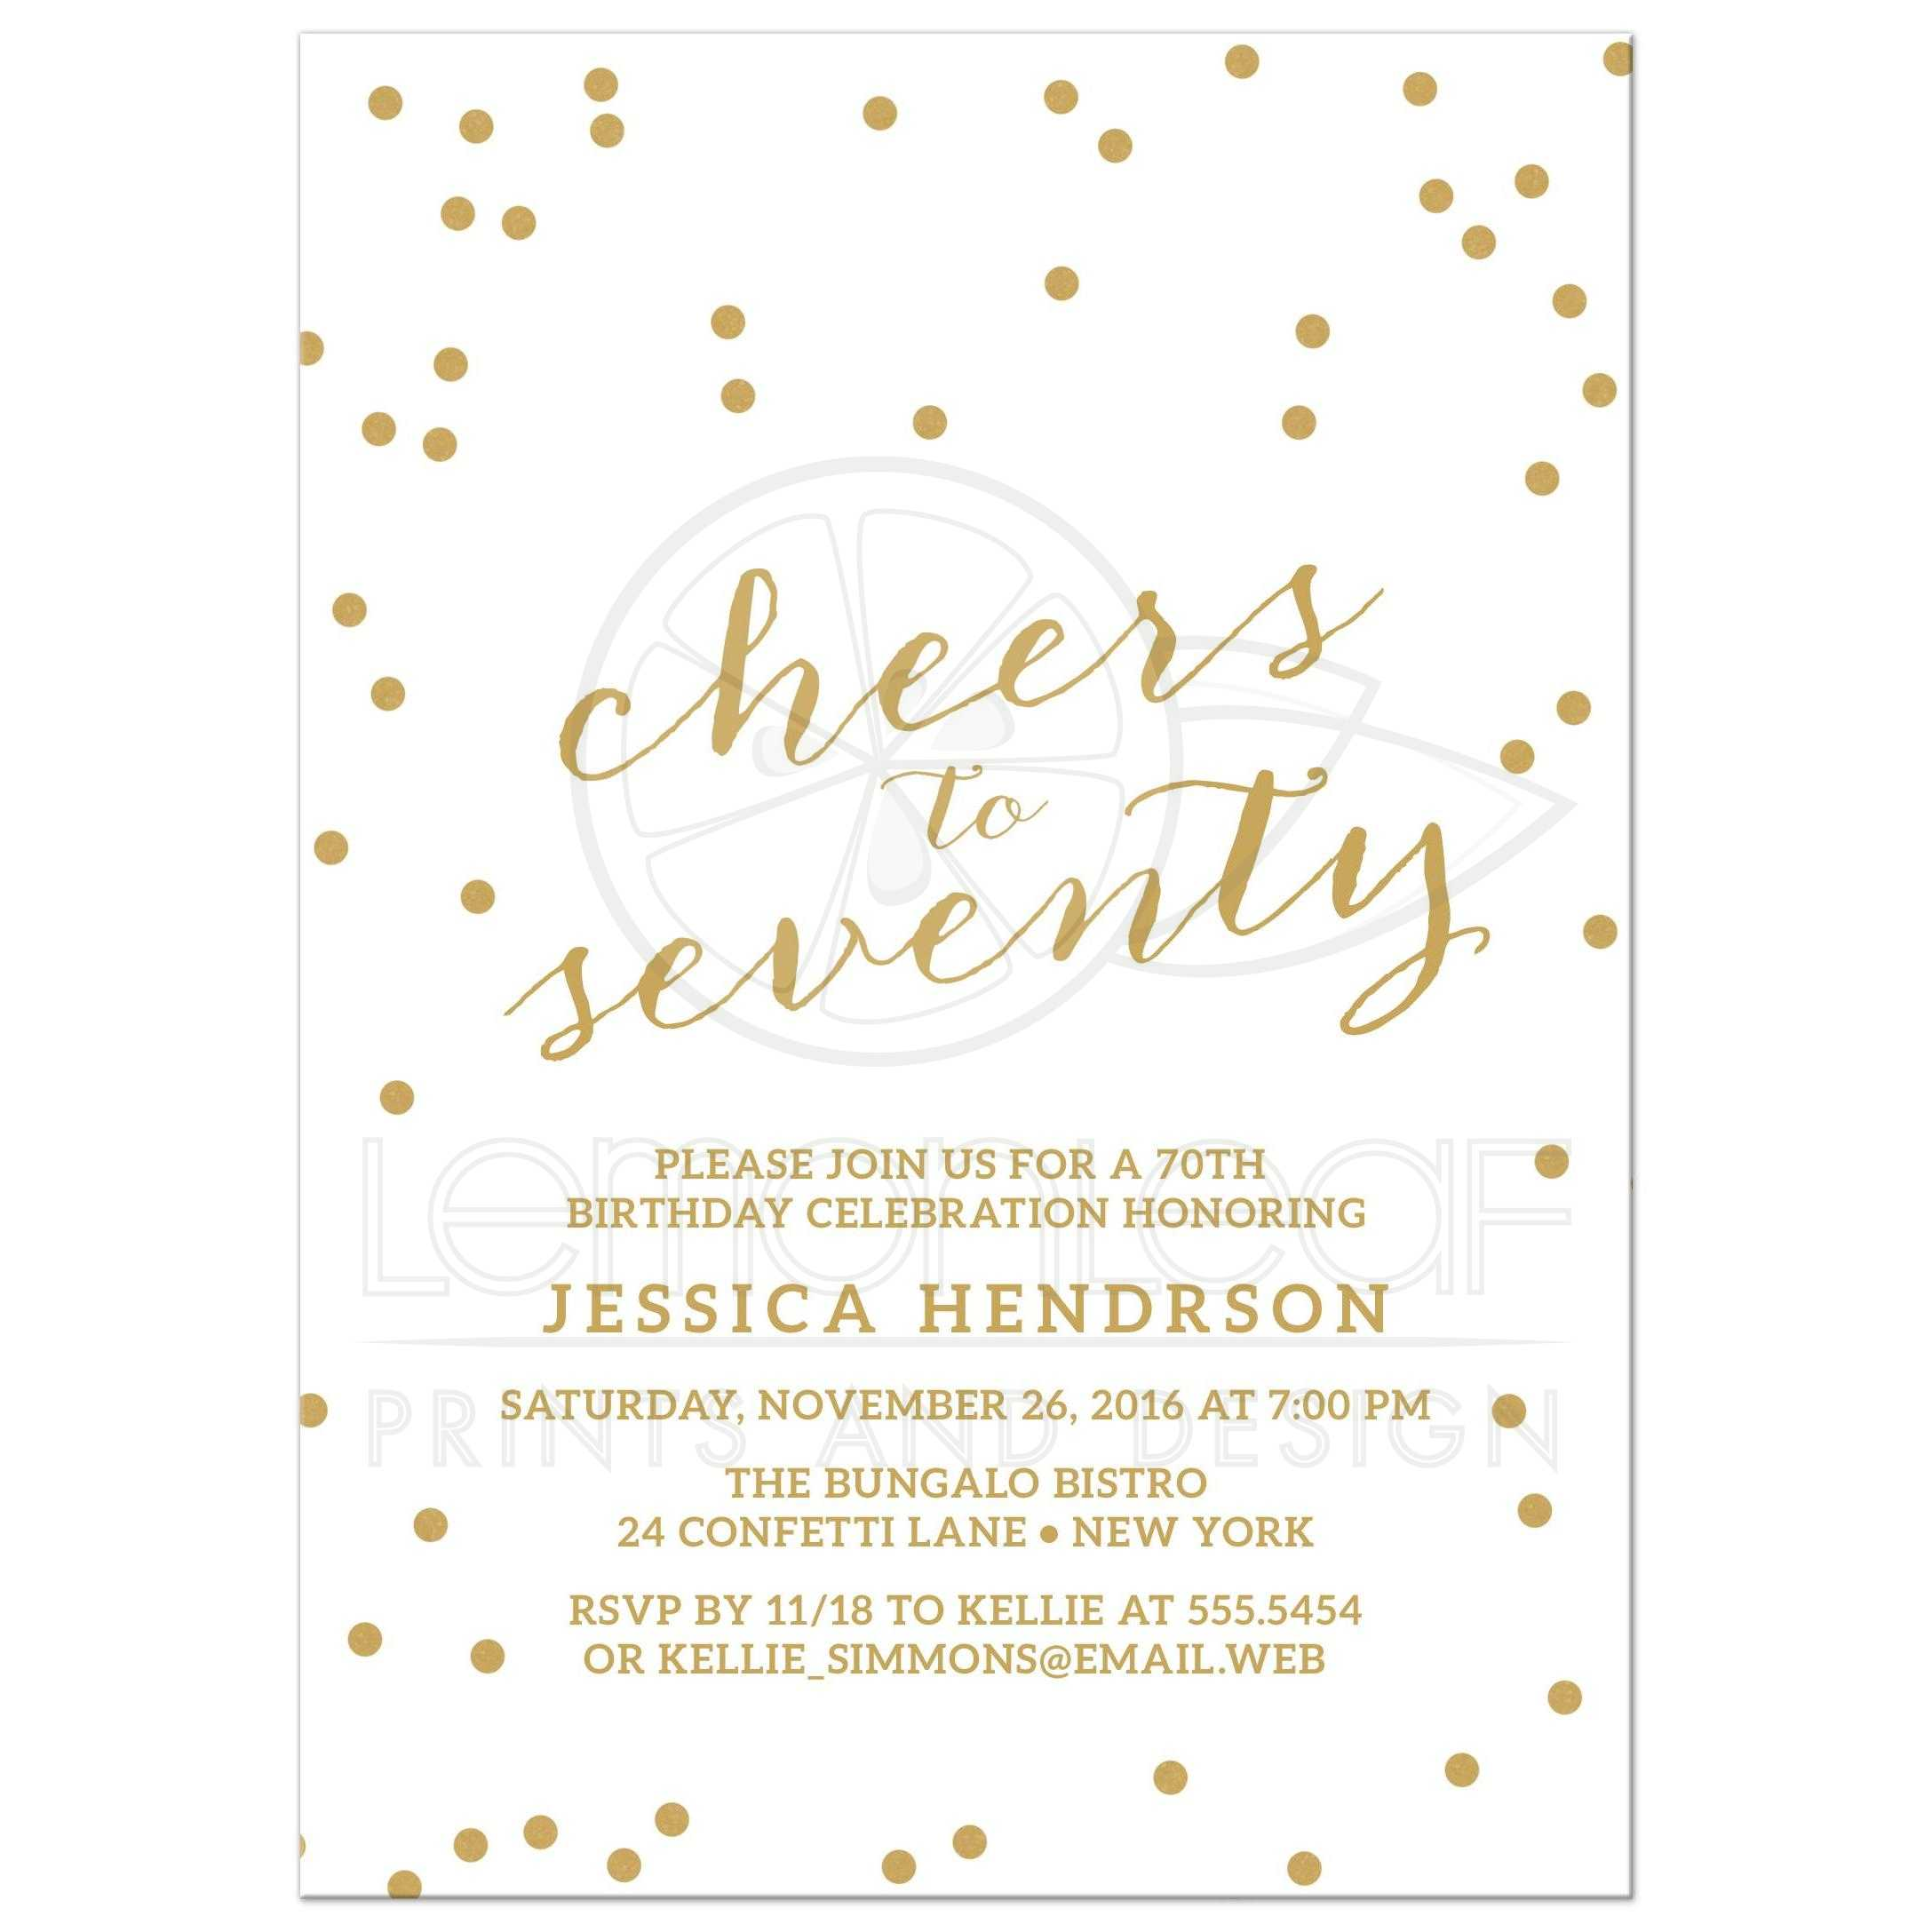 70th birthday party invitations gold confetti cheers to seventy gold confetti cheers to seventy birthday party invitations front filmwisefo